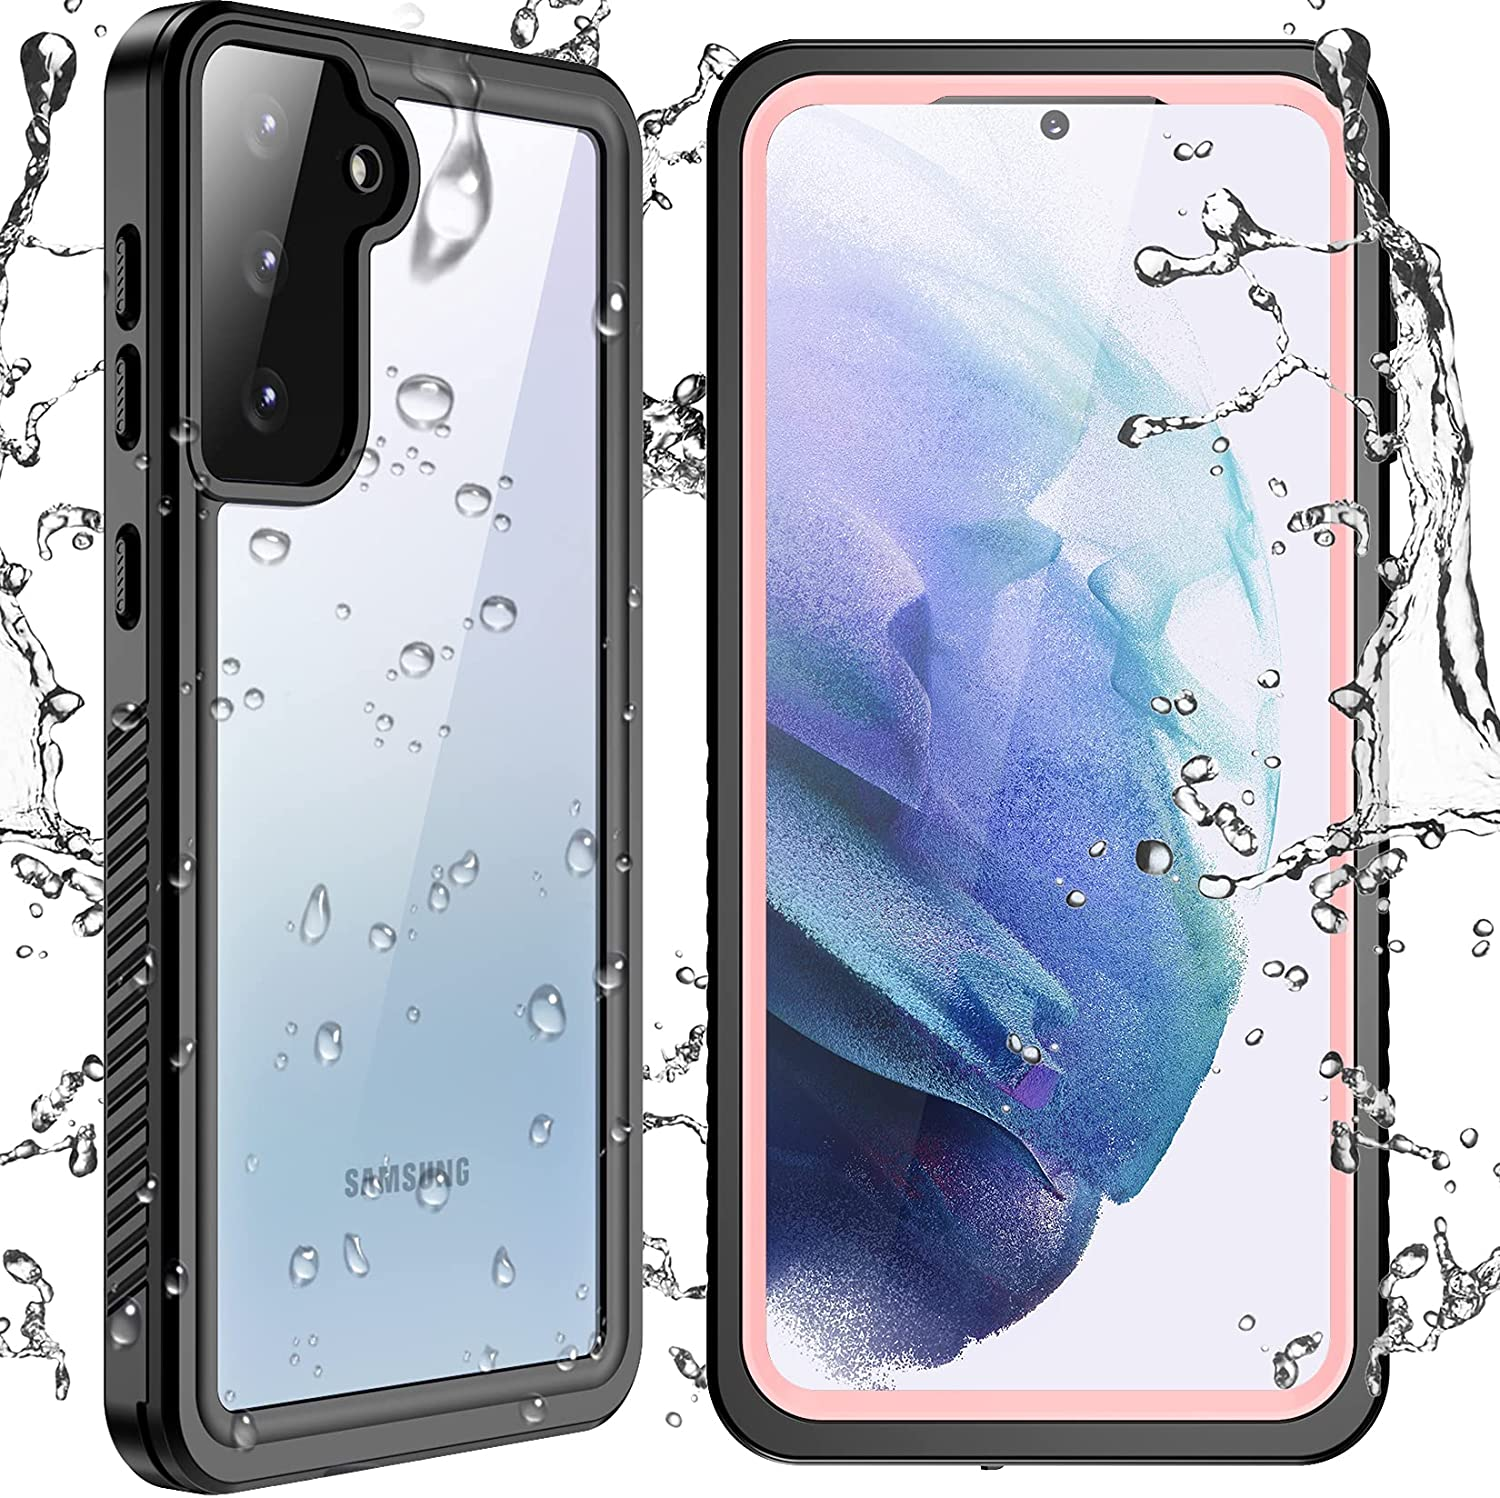 SPIDERCASE Designed for Samsung Galaxy S21 Plus Waterproof Case, Built-in Screen Protector Heavy Duty Protection Shockproof Anti-Scratched Cases for Samsung Galaxy S21 Plus 6.7